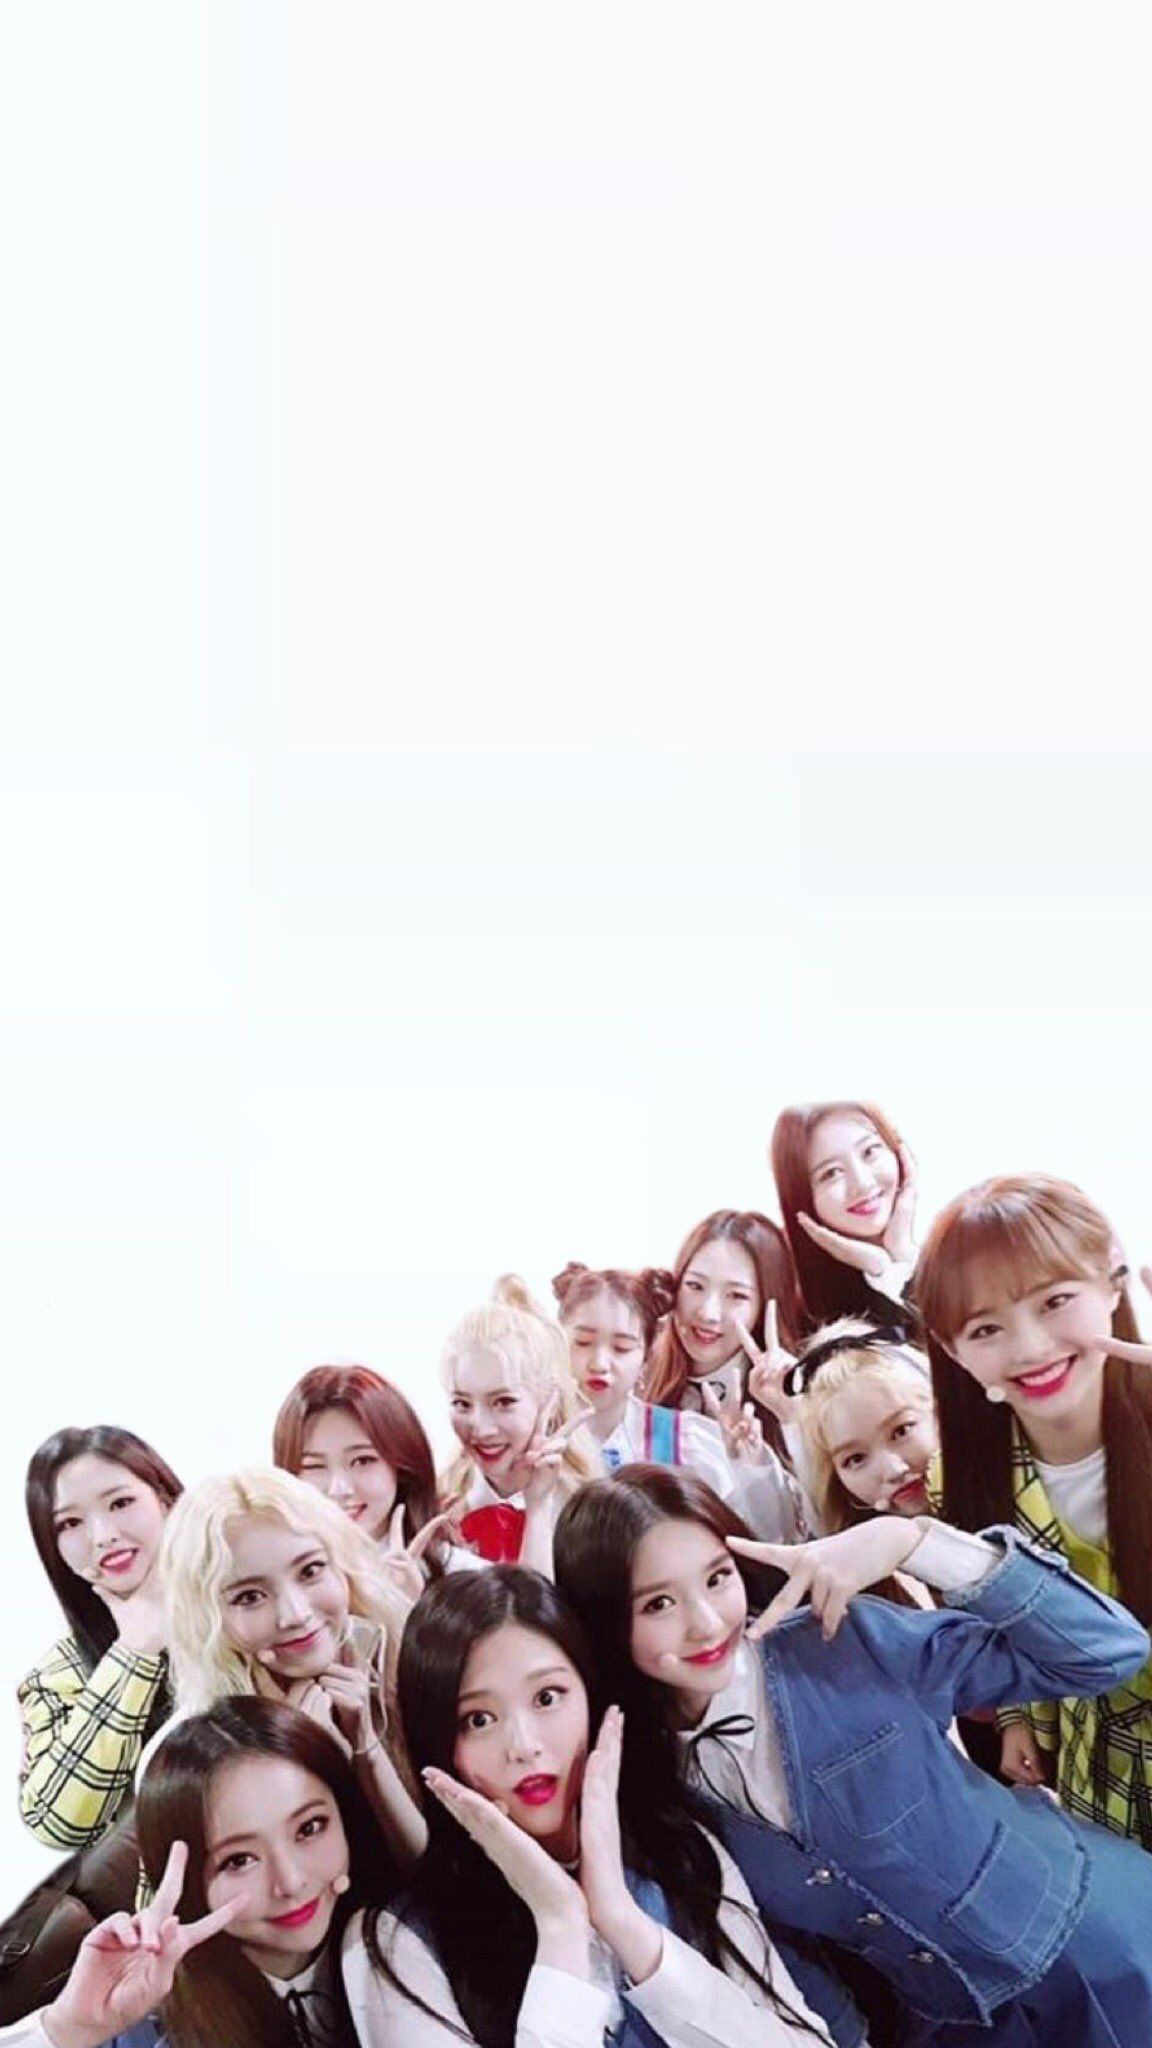 Loona for phone backgrounds Phone backgrounds, Couple